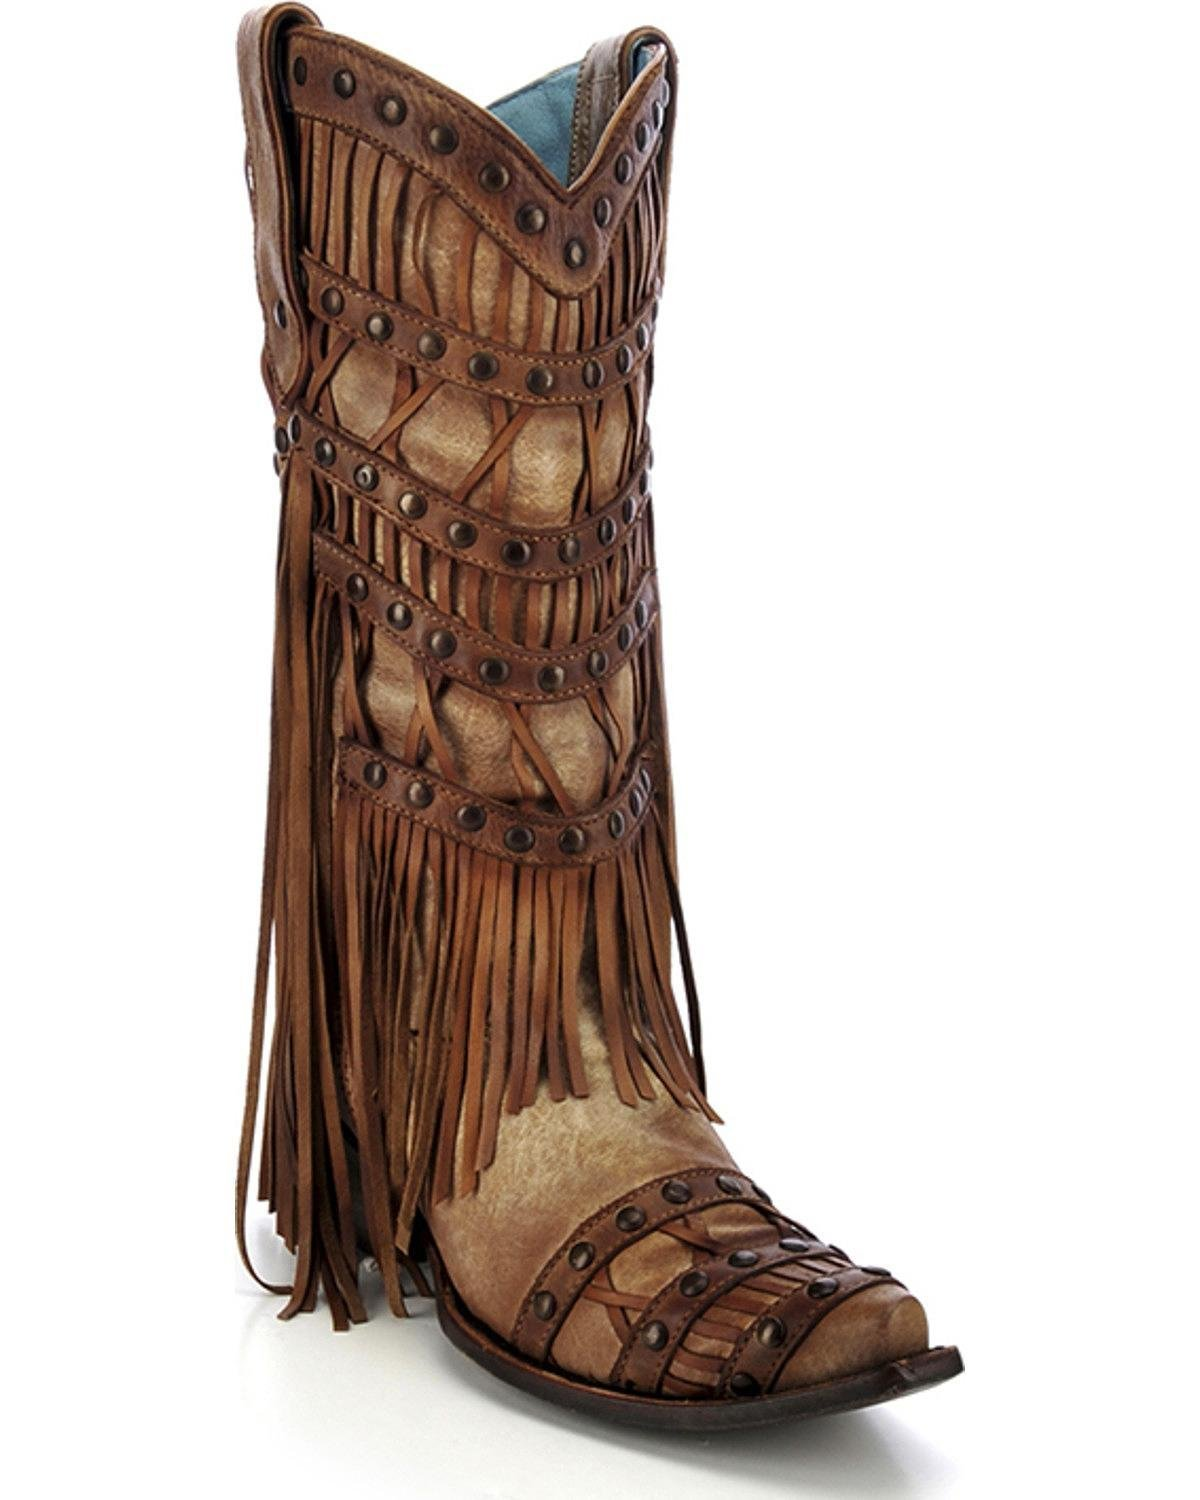 CORRAL Women's Studded Fringe Cowgirl Boot Snip Toe - C2988 B01IKKAVE6 8.5 M US|Tan